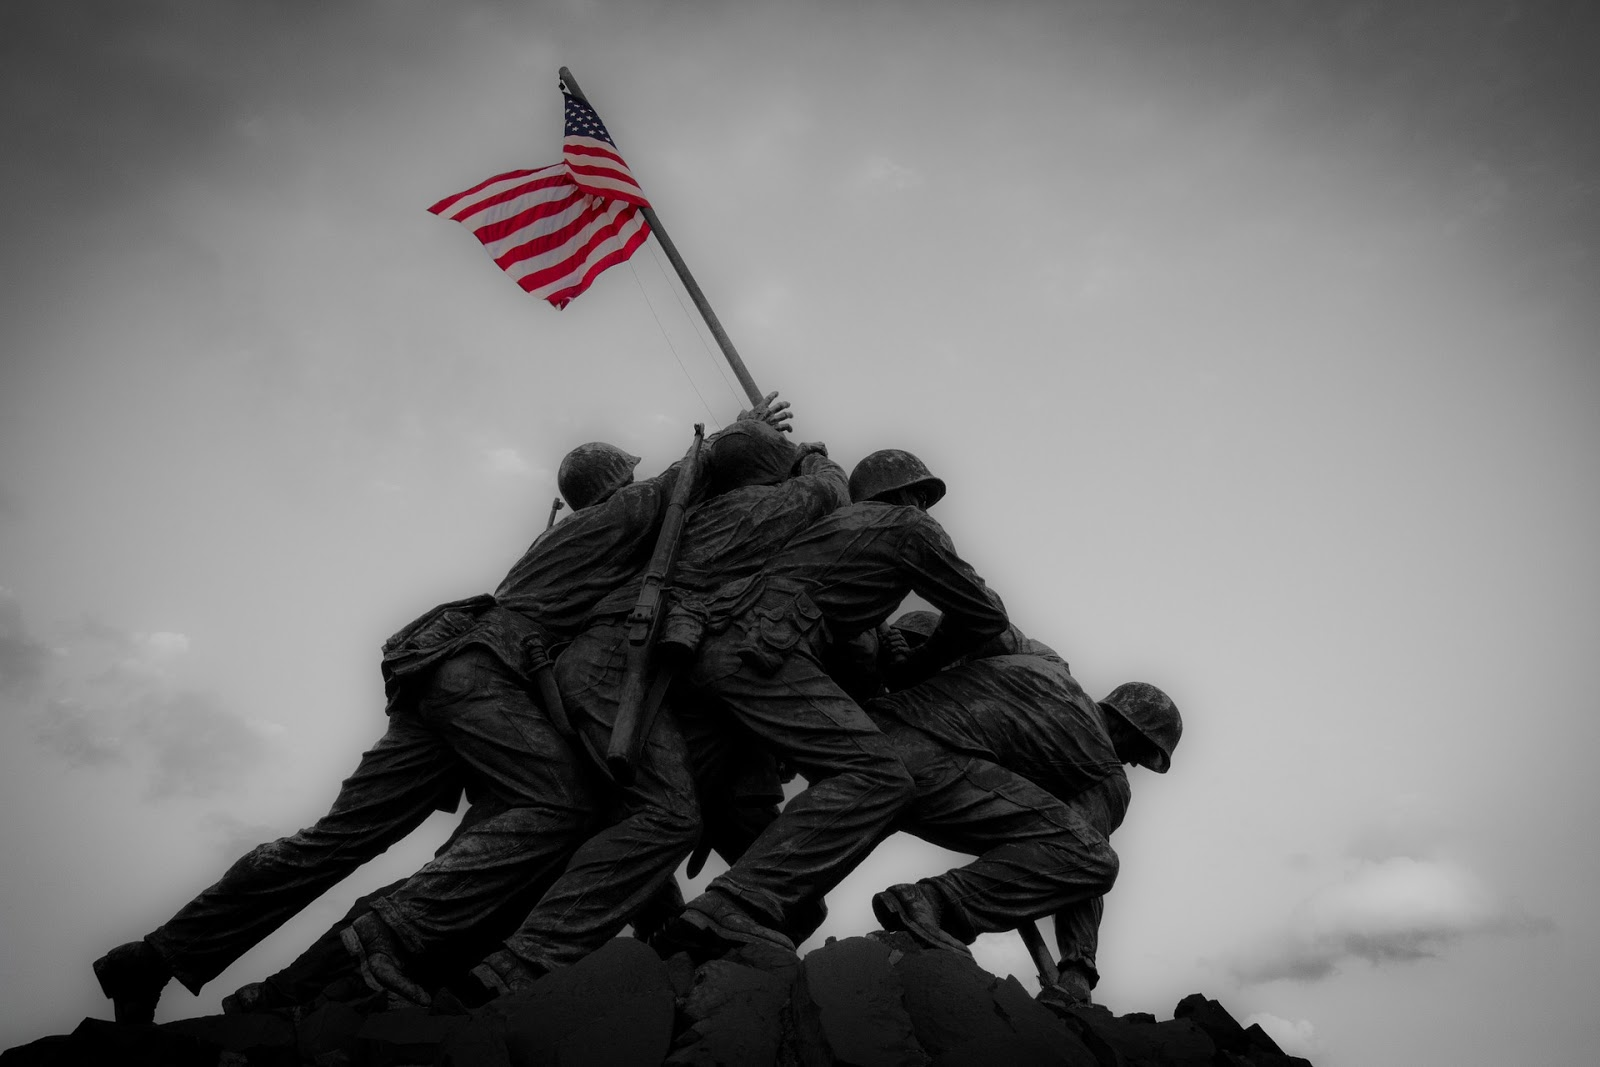 soldiers raising american flag on iwo jima to illustrate blog post about the anniversary of VJ-Day and mini-series the Pacific